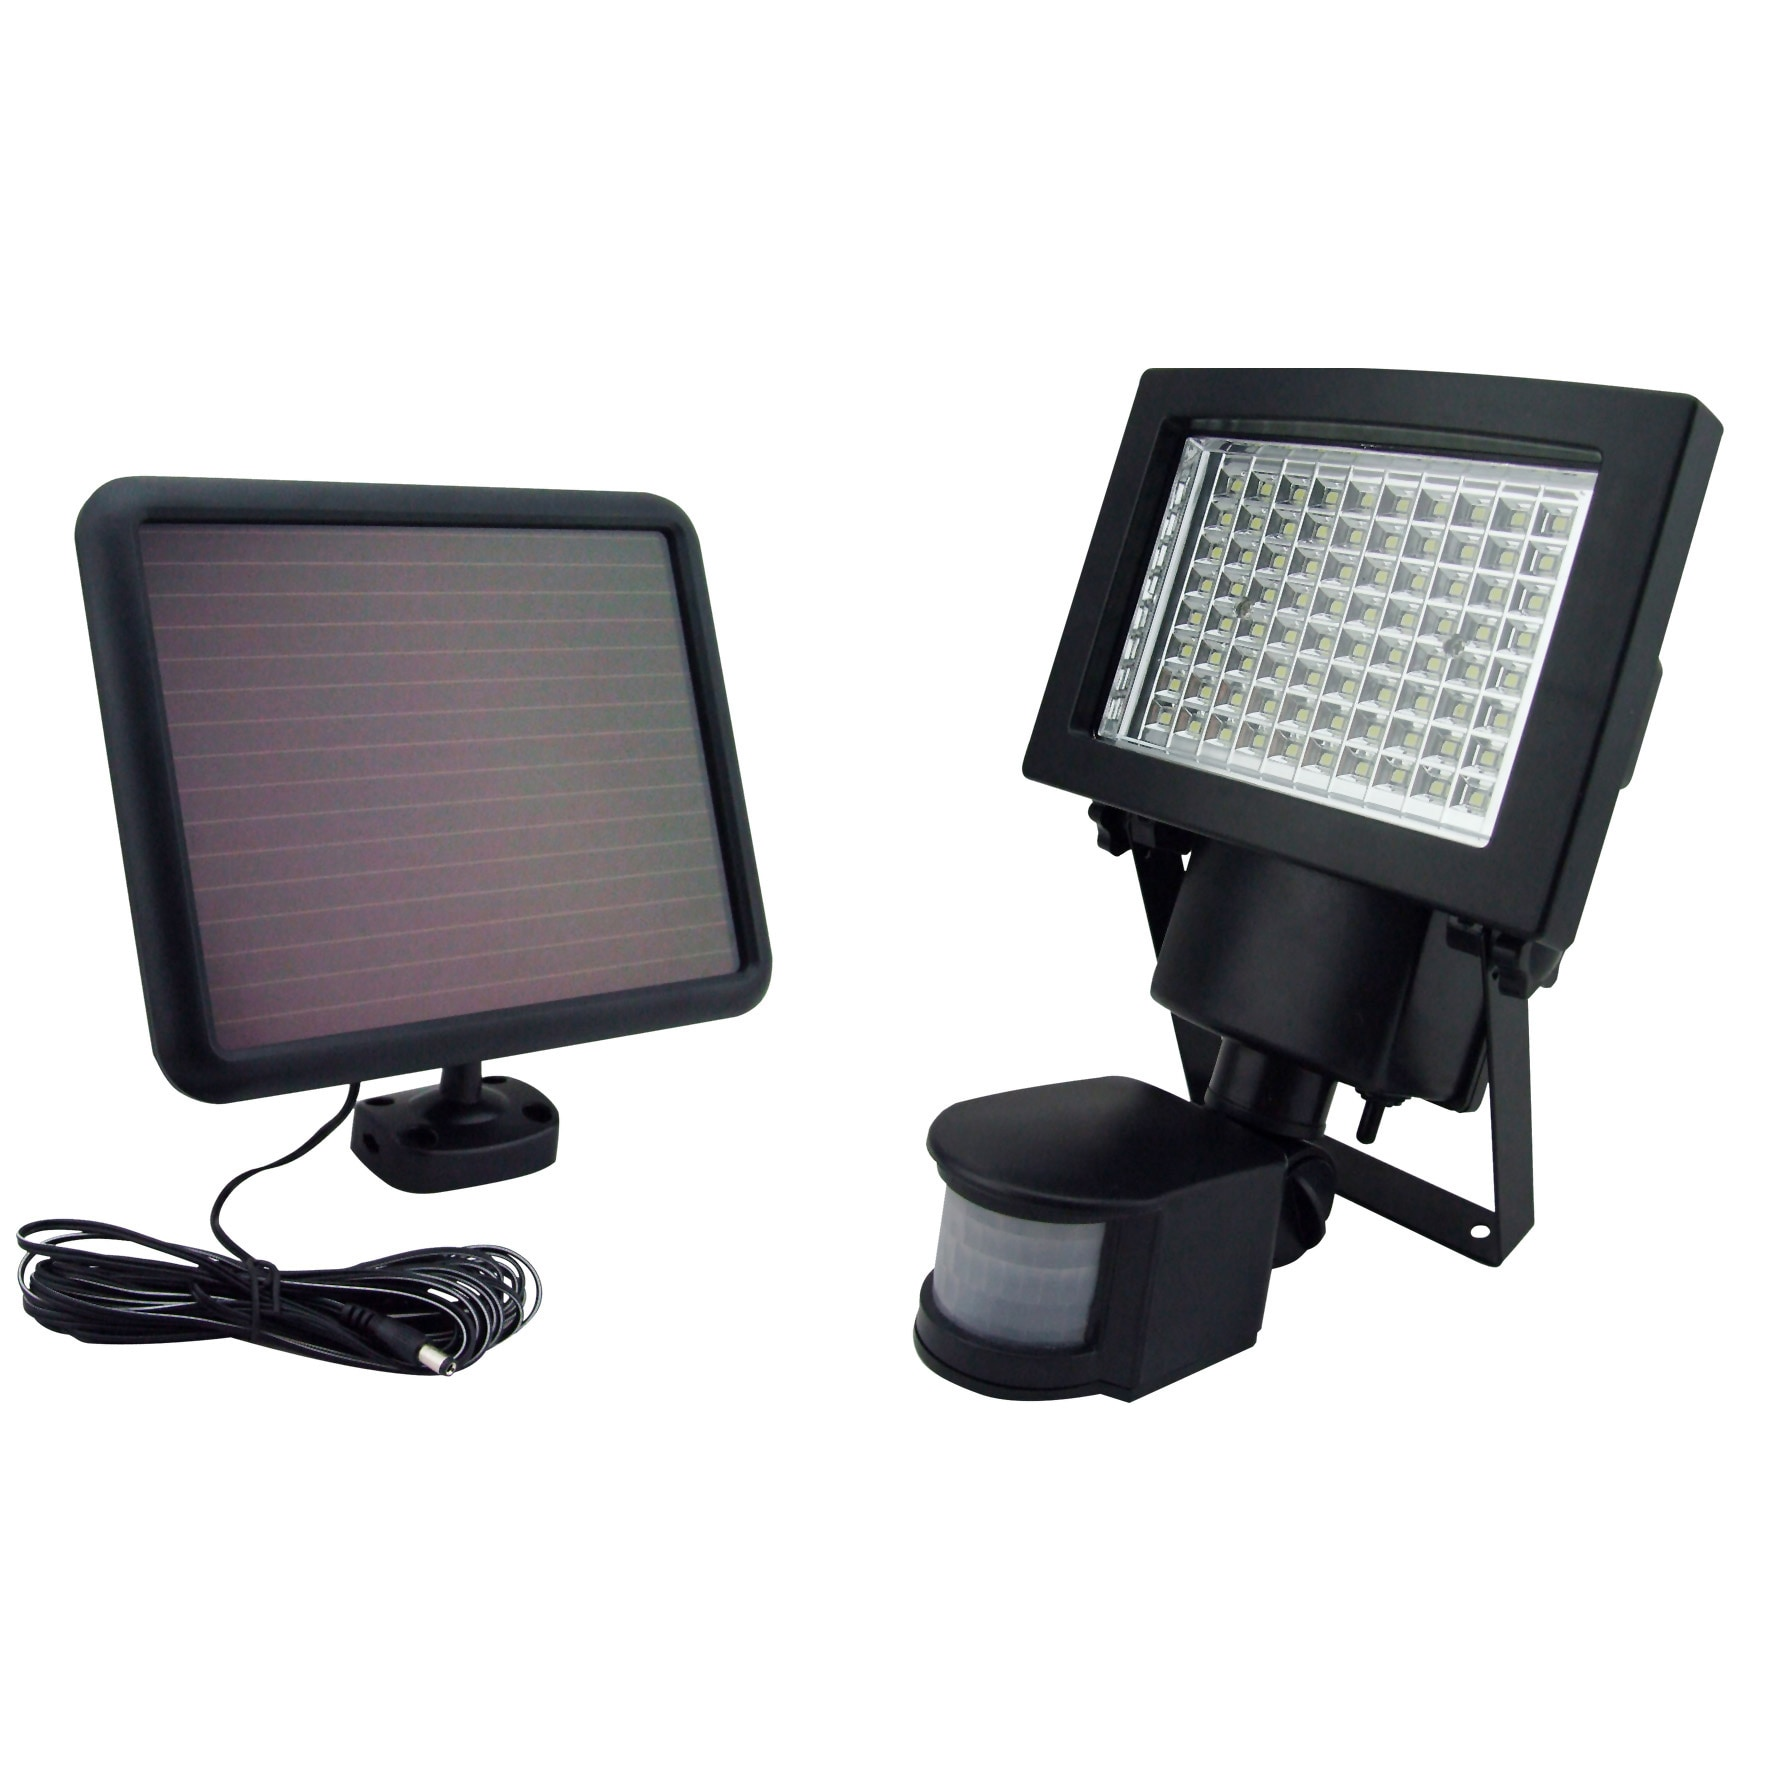 Sontax Outdoor Solar Powered 80 LED Motion Light Security...